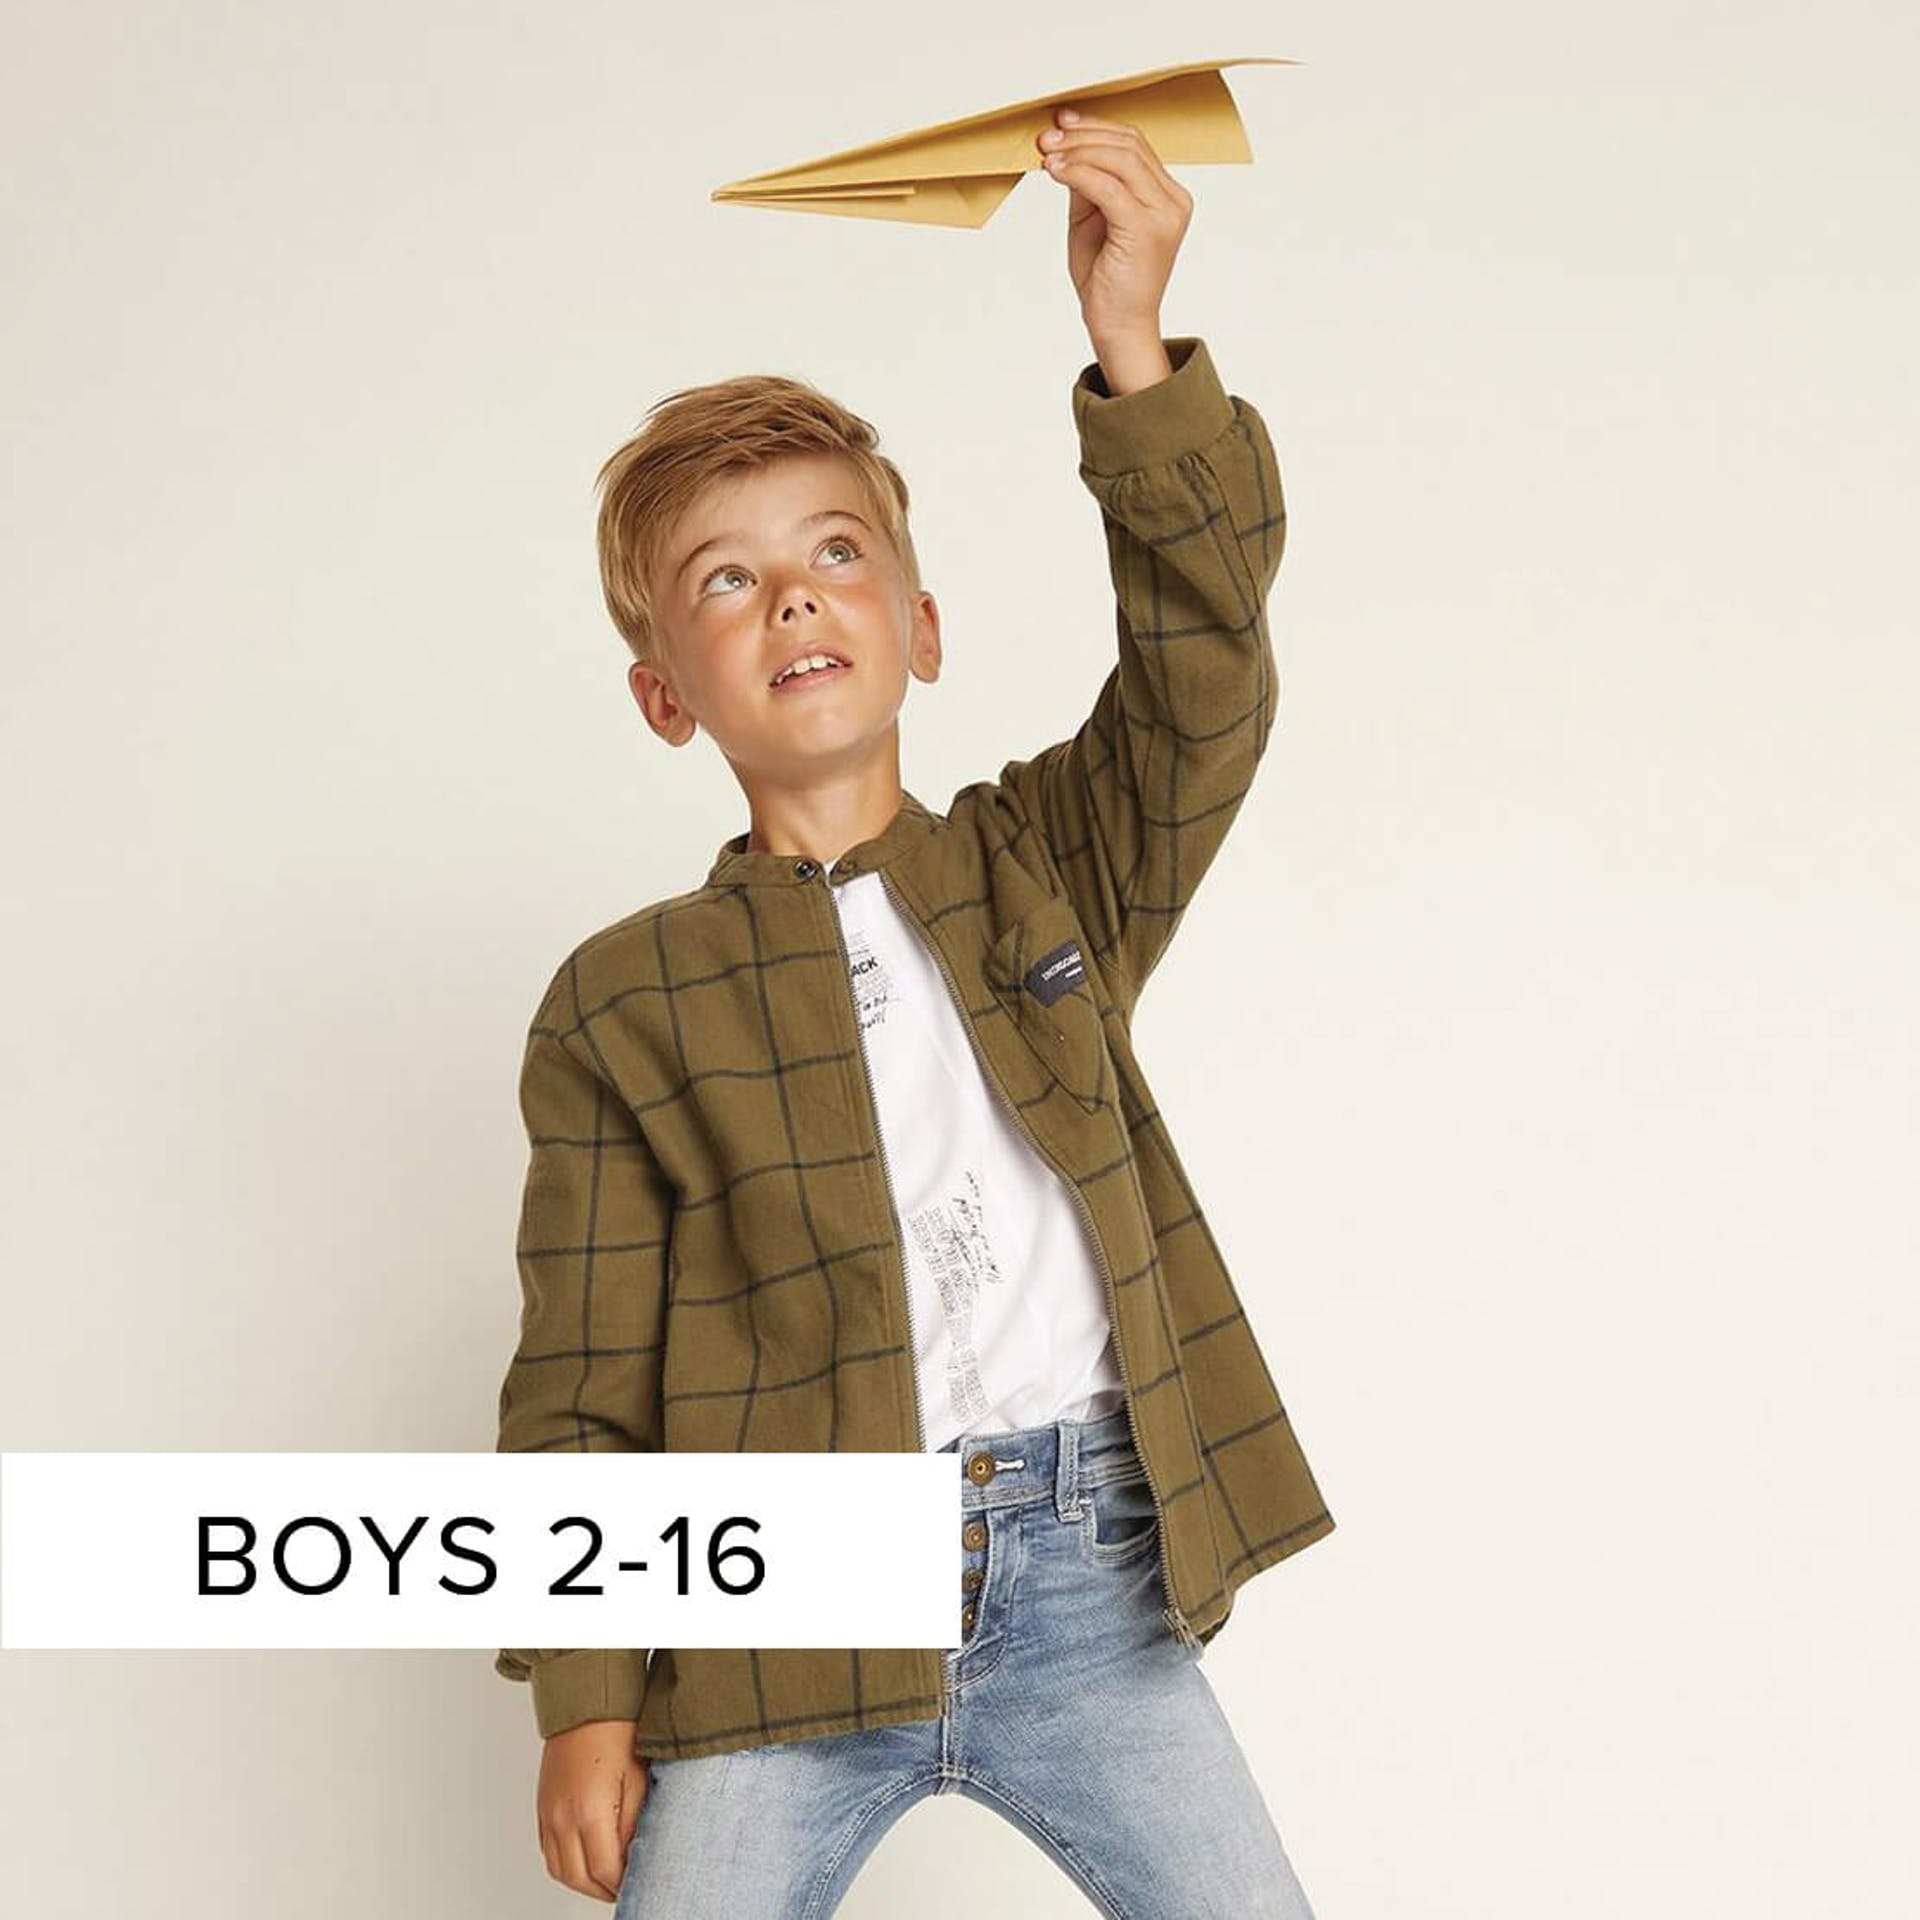 boys clothing from ages 2 to 16 years of age